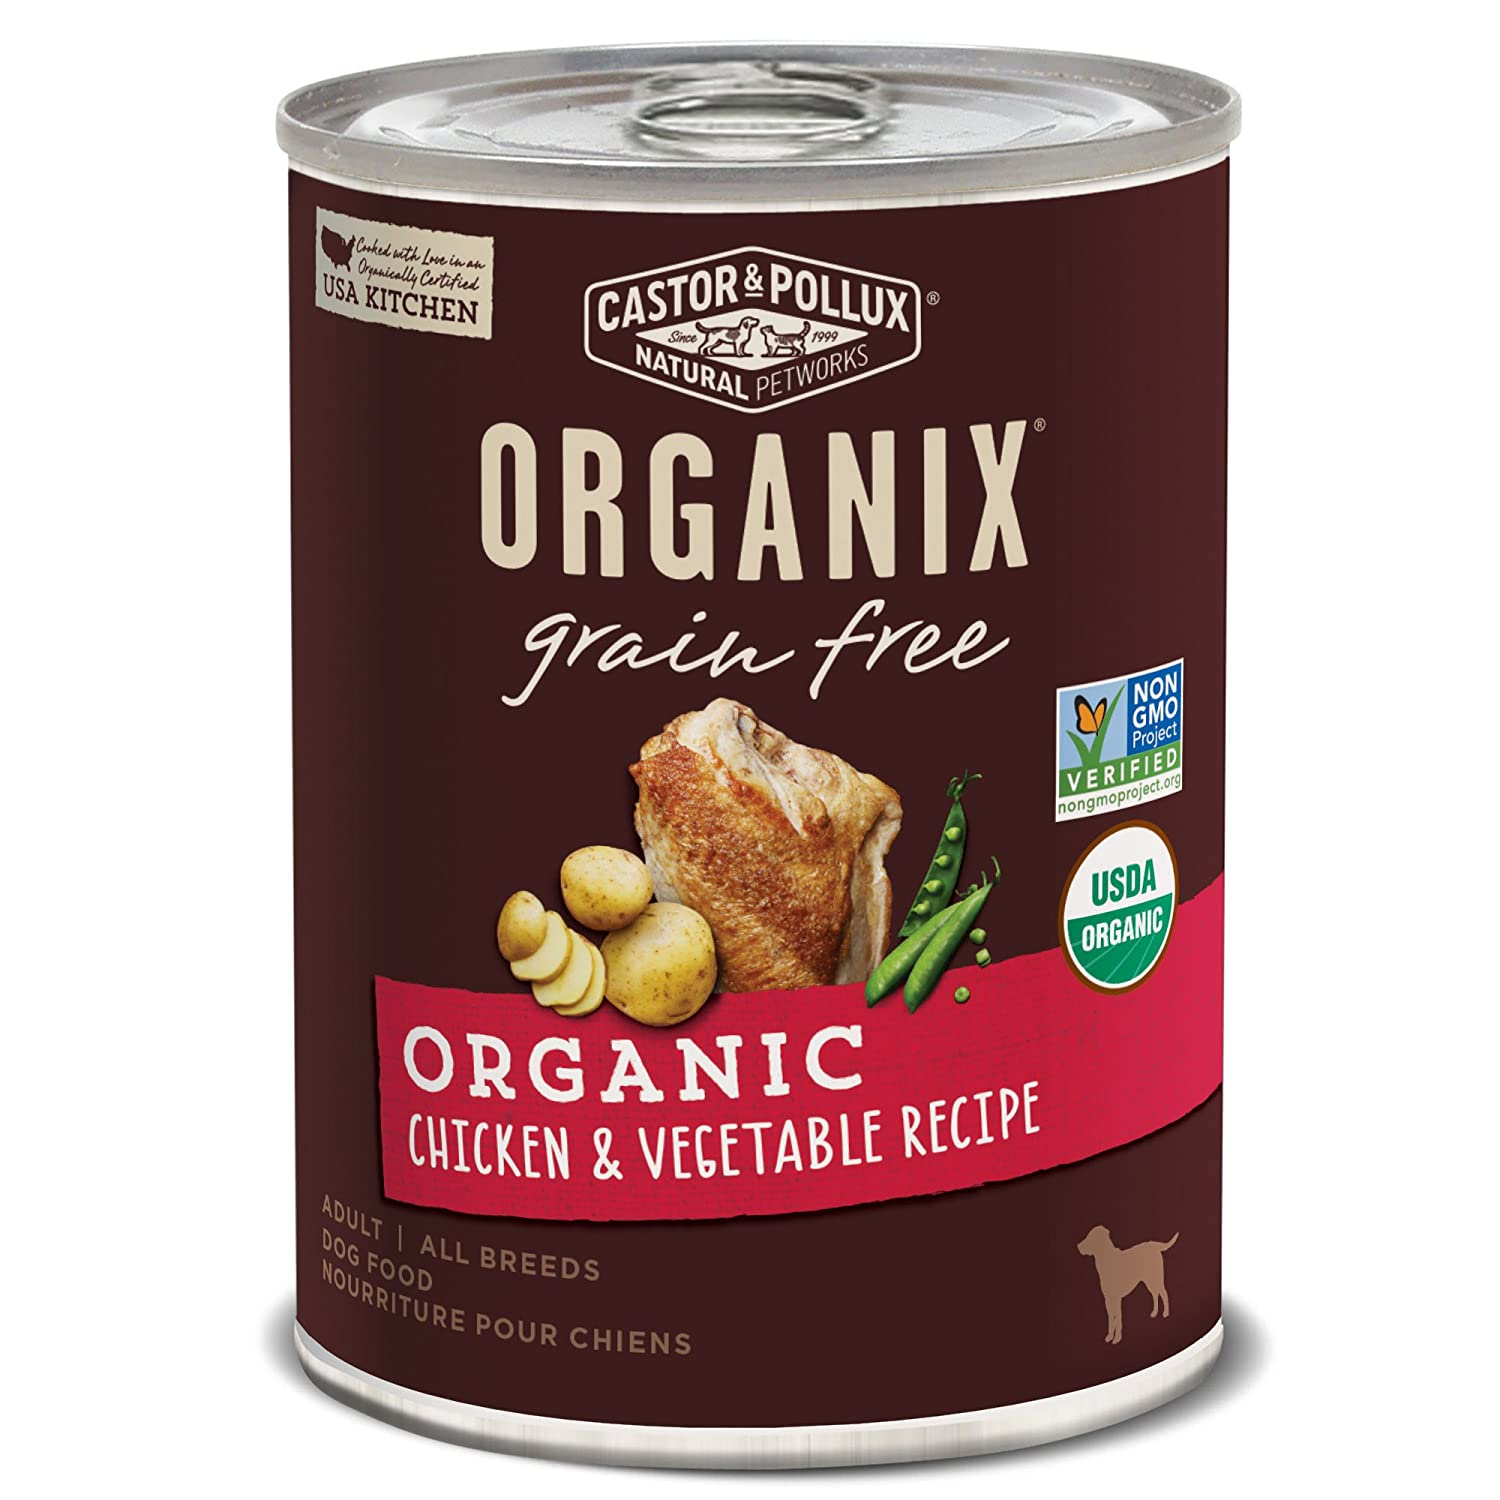 Castor Pollux Organix Grain Free Organic Chicken Vegetable Recipe Wet Dog Food, 12.7 Oz., Case Of 12 Cans